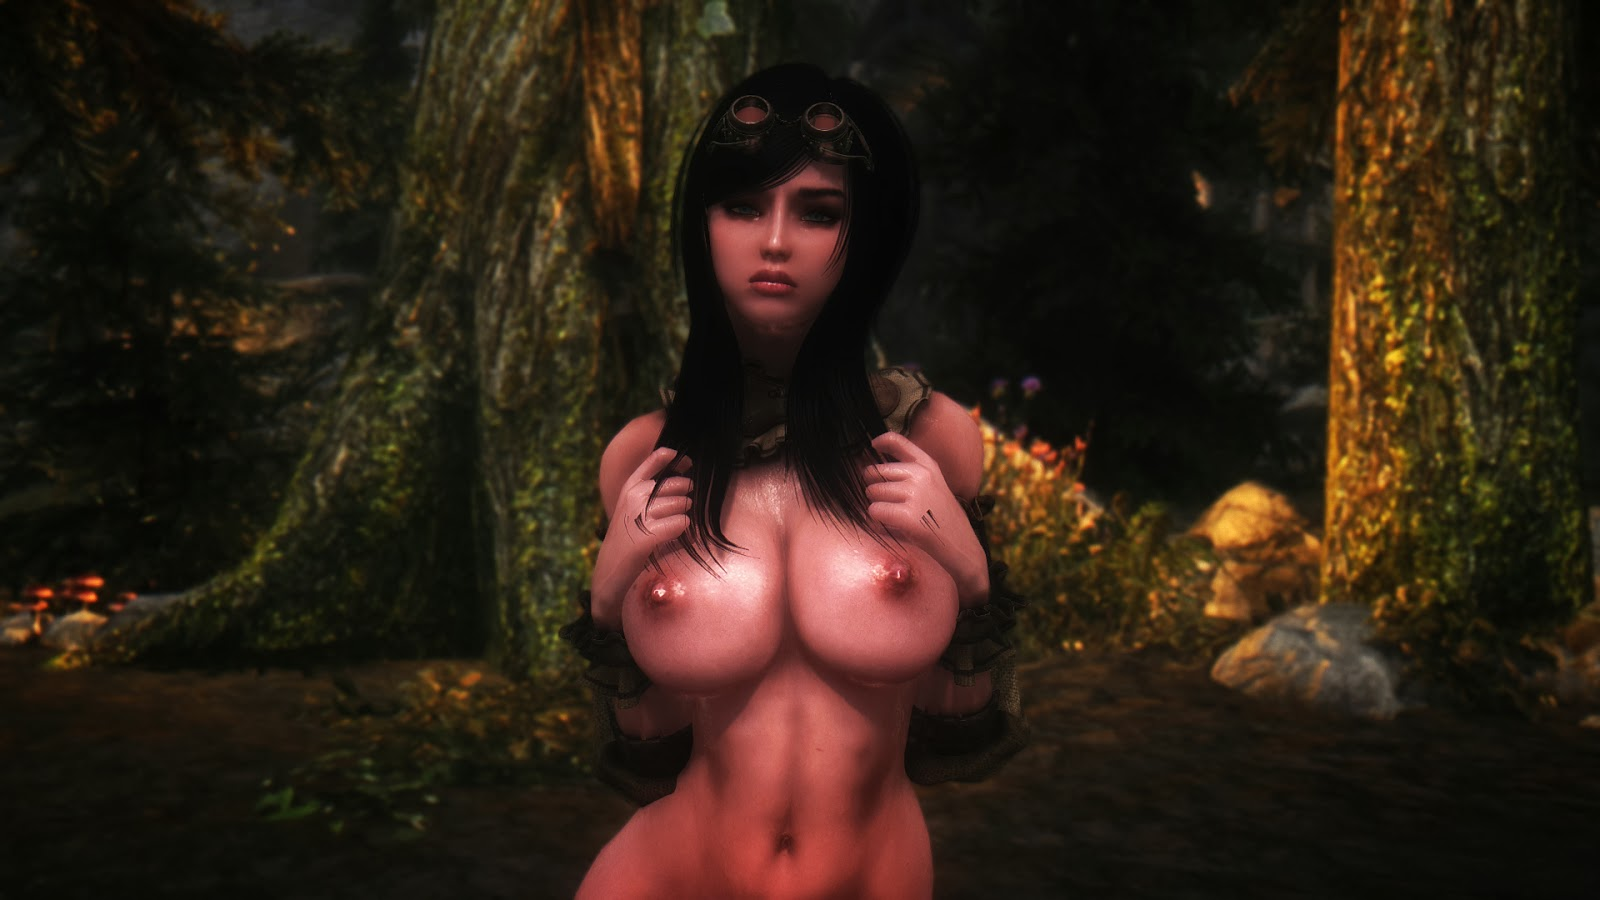 Skyrim sexvideos adult thumbs